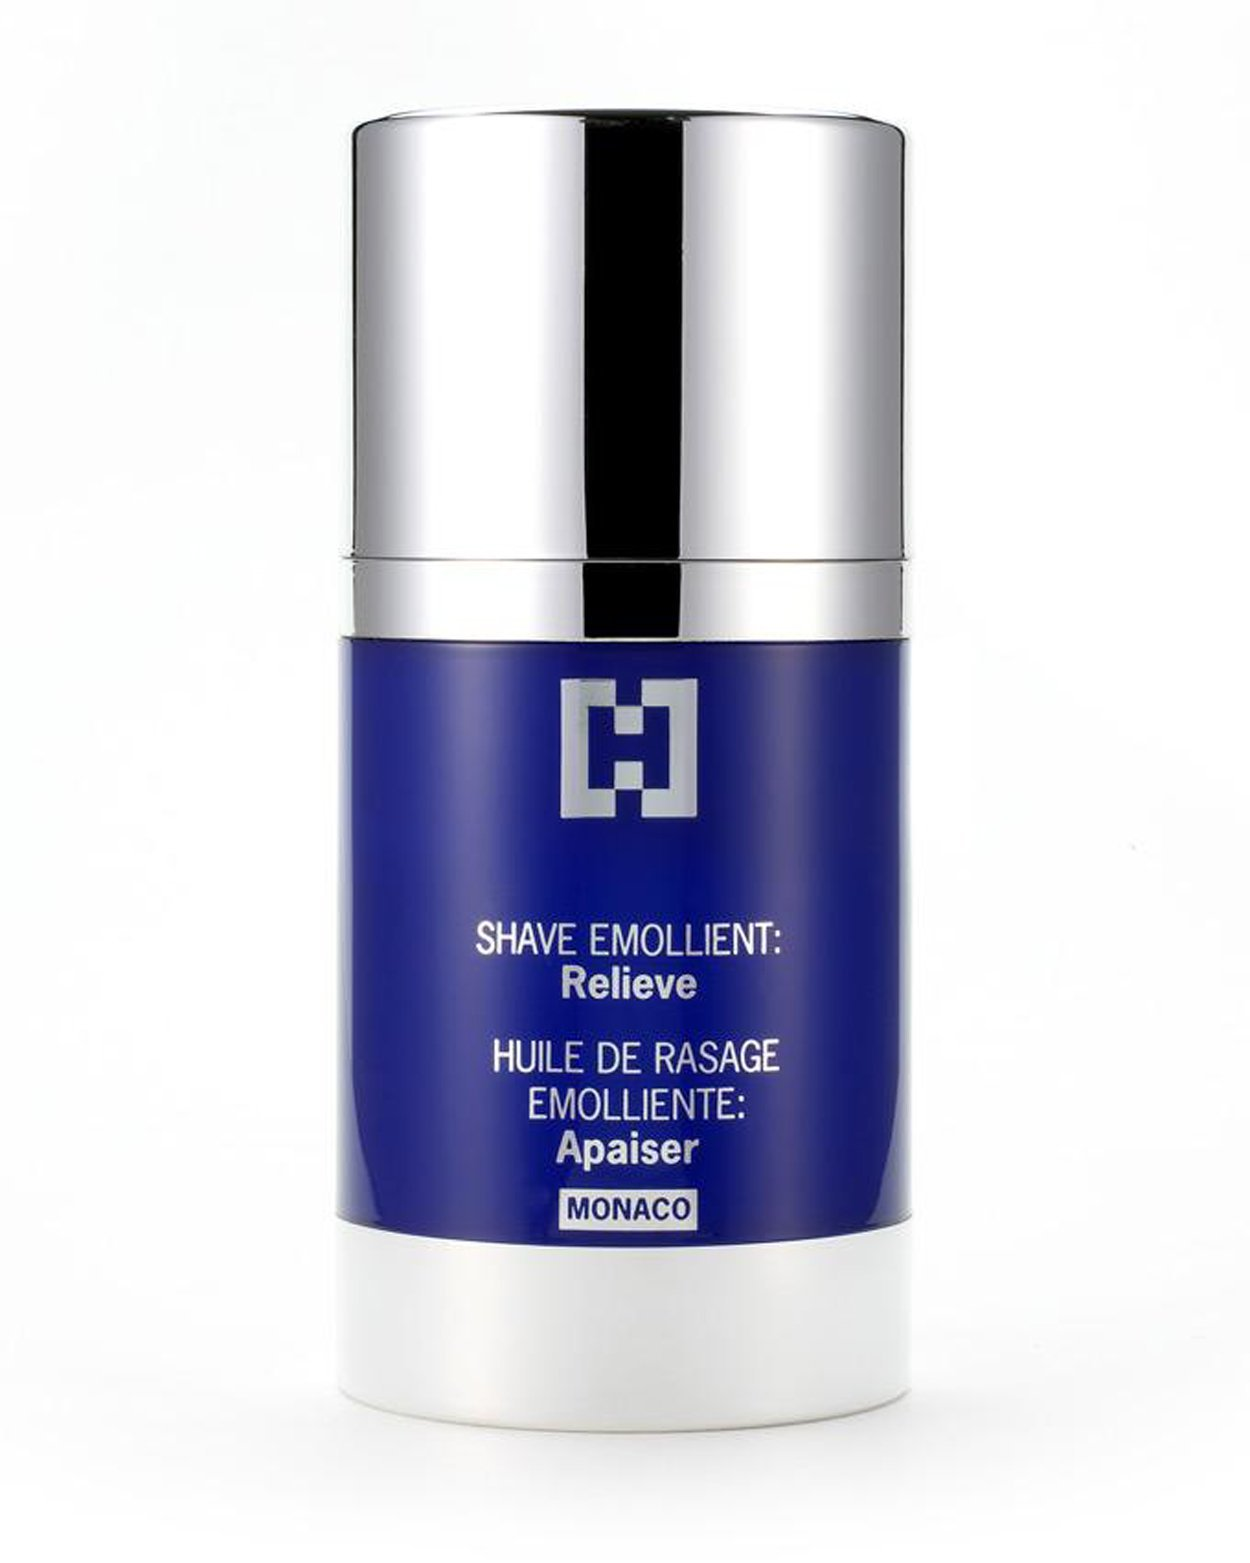 HOMMAGE Relieve Shave Emollient, 4 fl. oz. by HOMMAGE